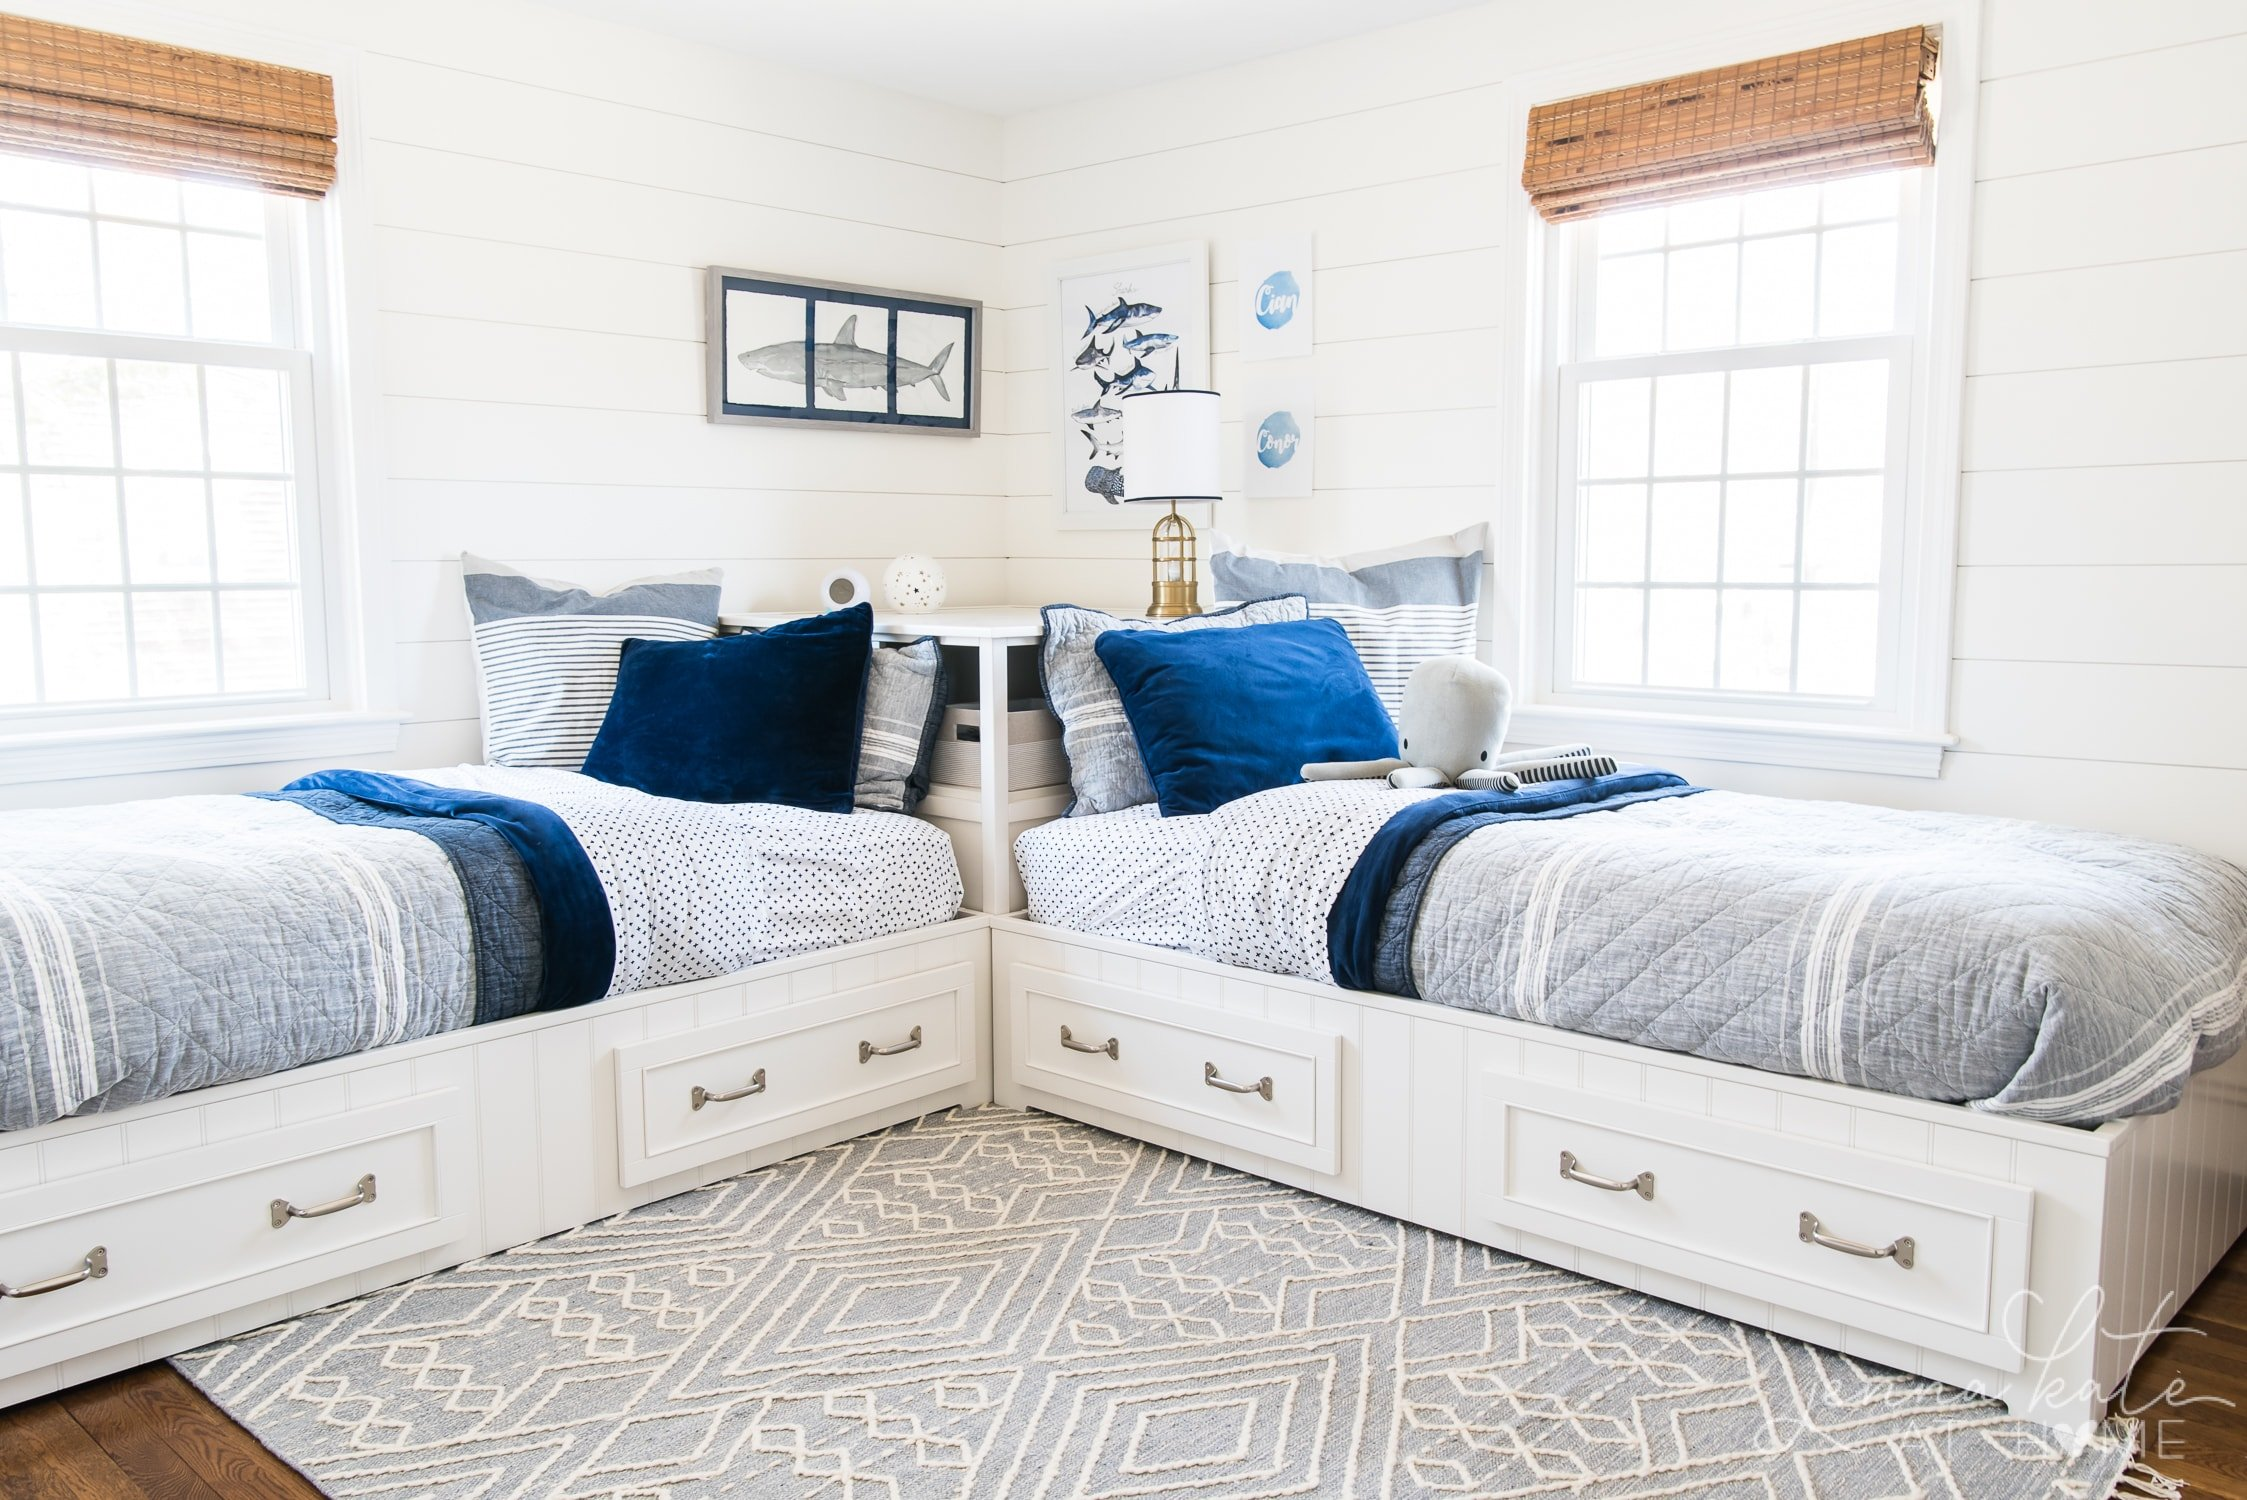 shared boy bedroom with two twin beds with navy and gray bedding